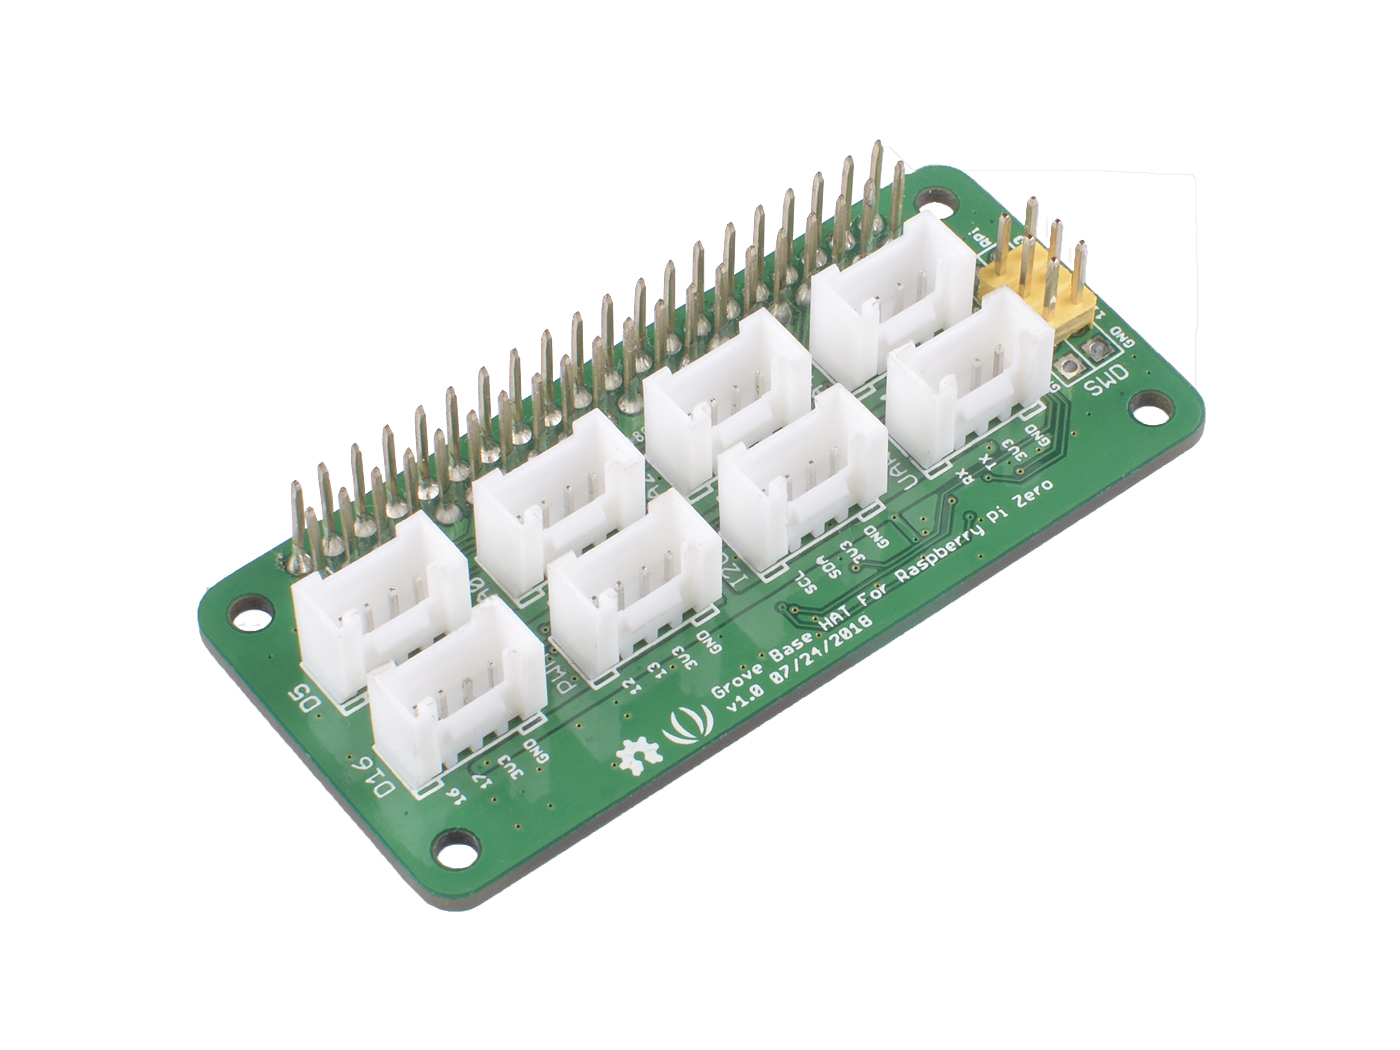 Grove Base Hat For Raspberry Pi Shield Dummies Experimental Board Analog Digital Zero